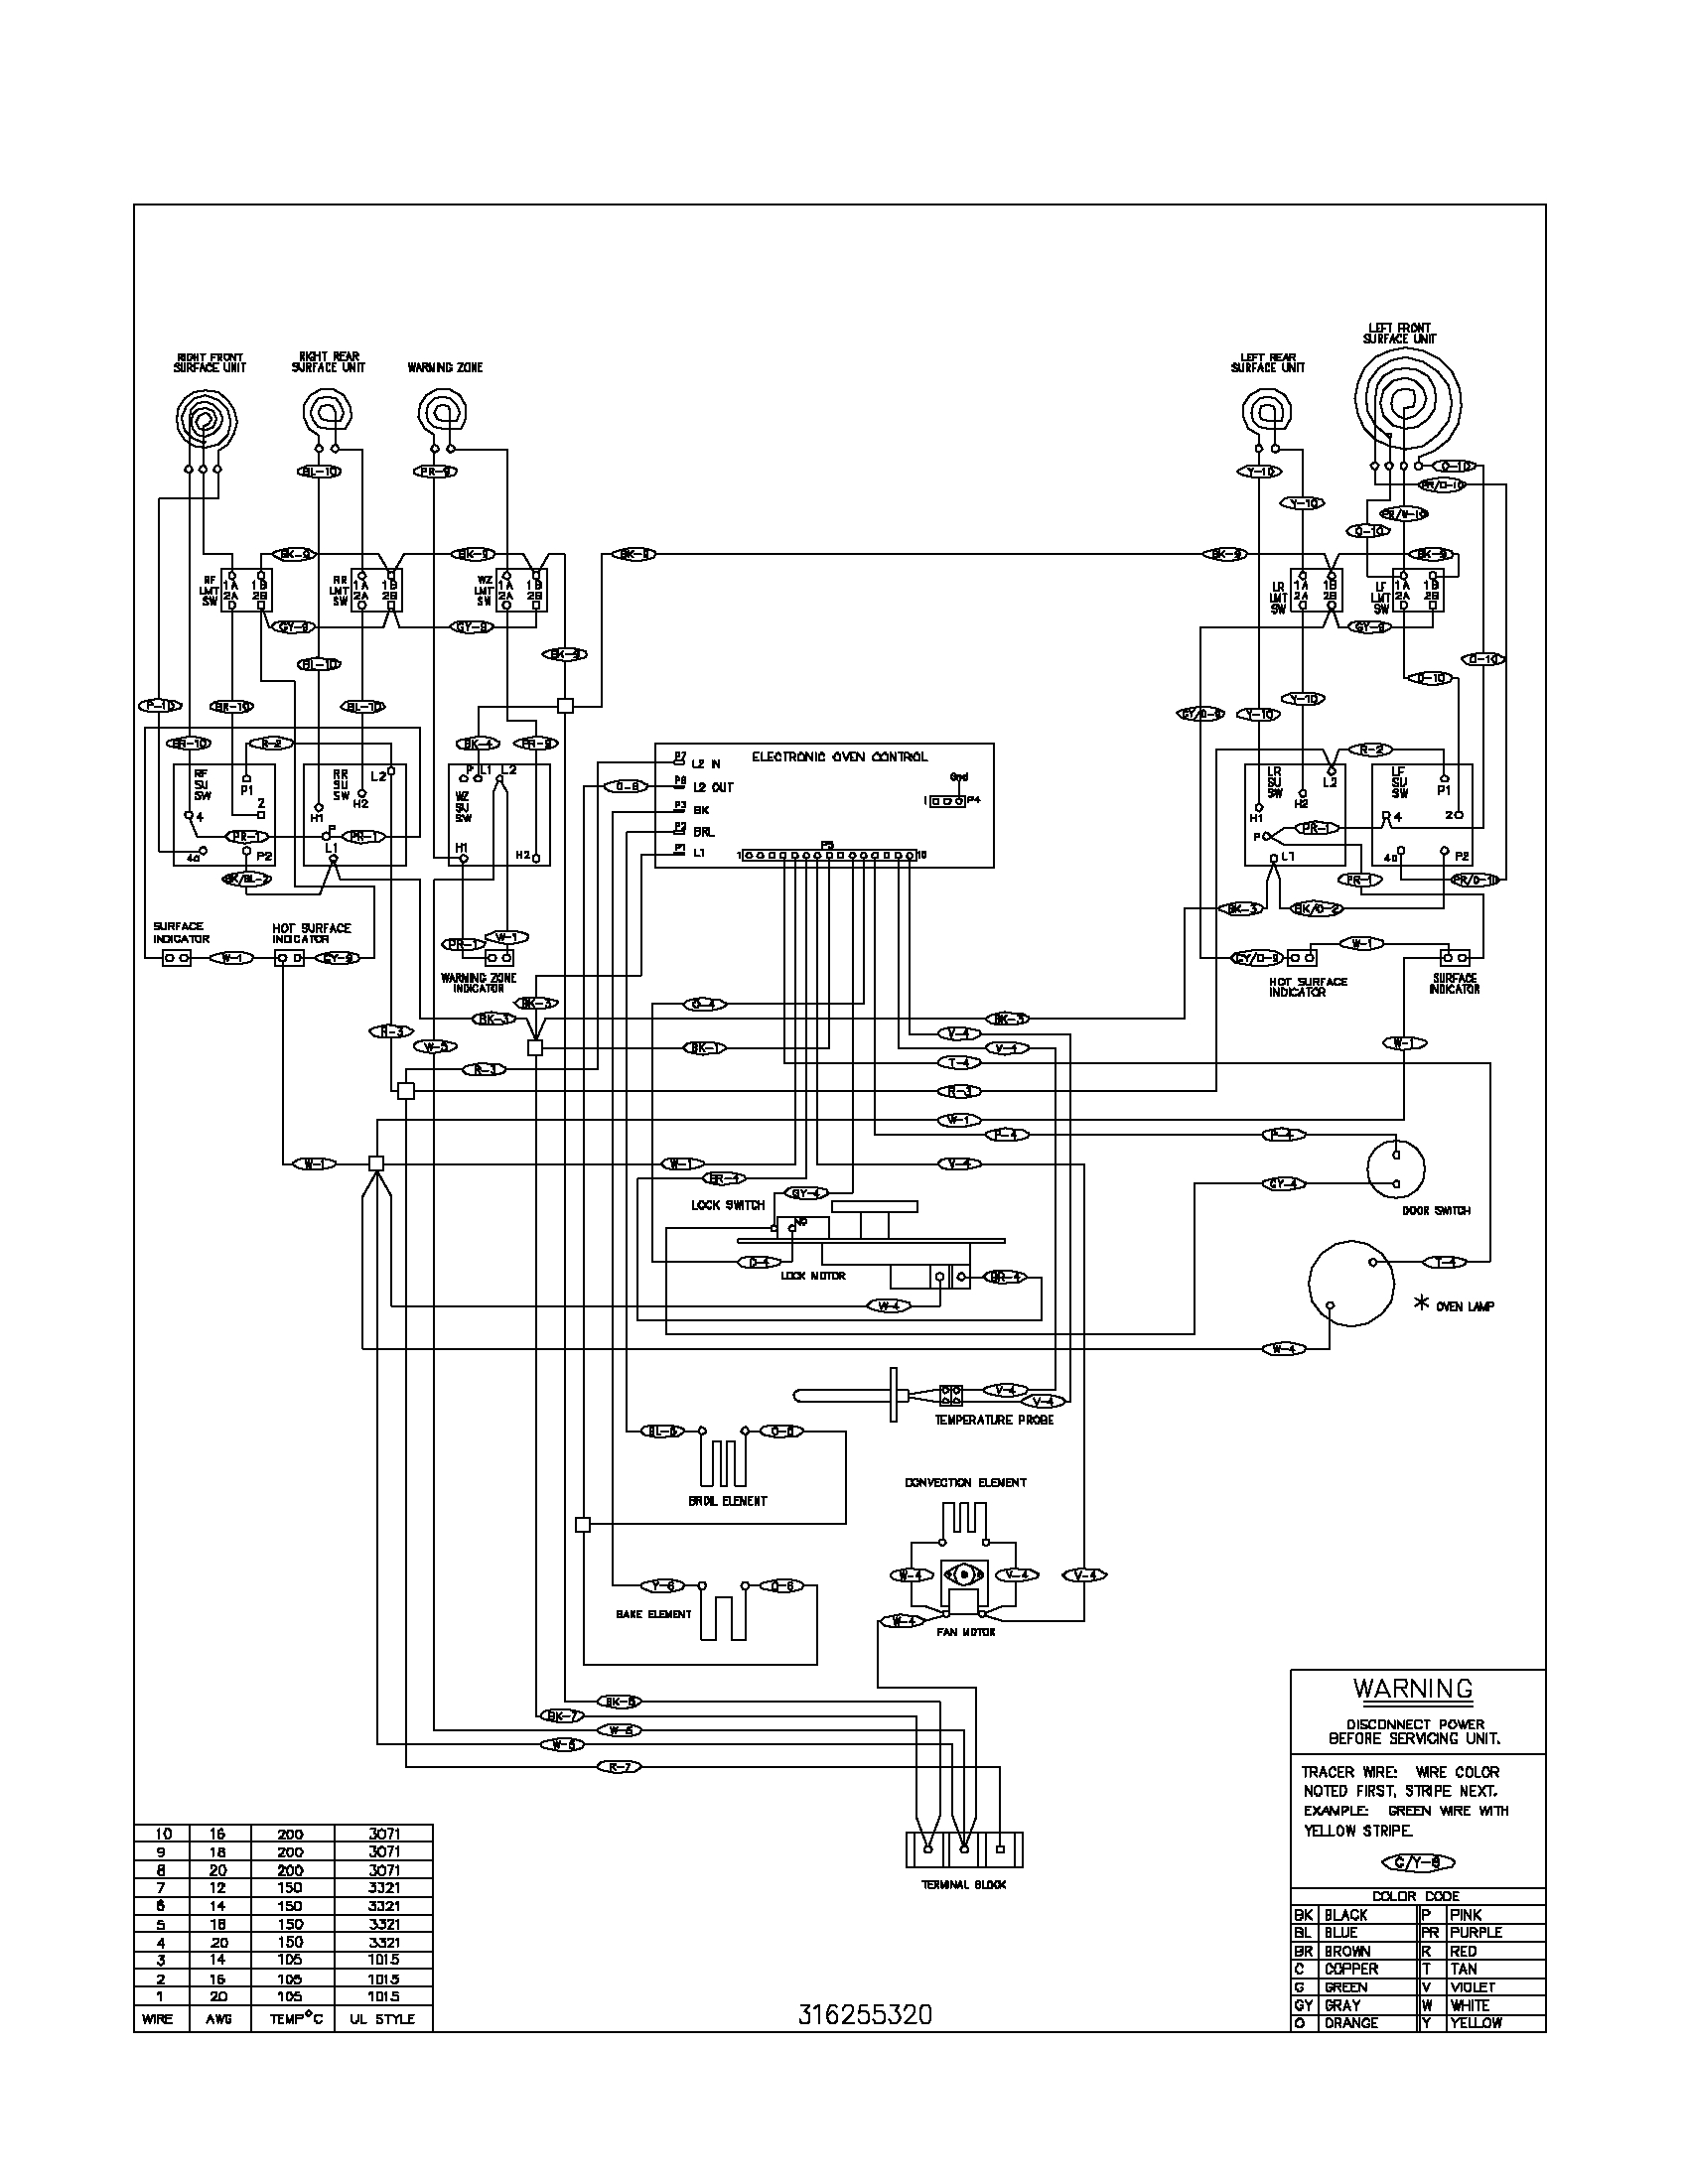 wiring diagram for a stove online manuual of wiring diagram electrical outlet symbols blueprints on ge stove electric range wiring